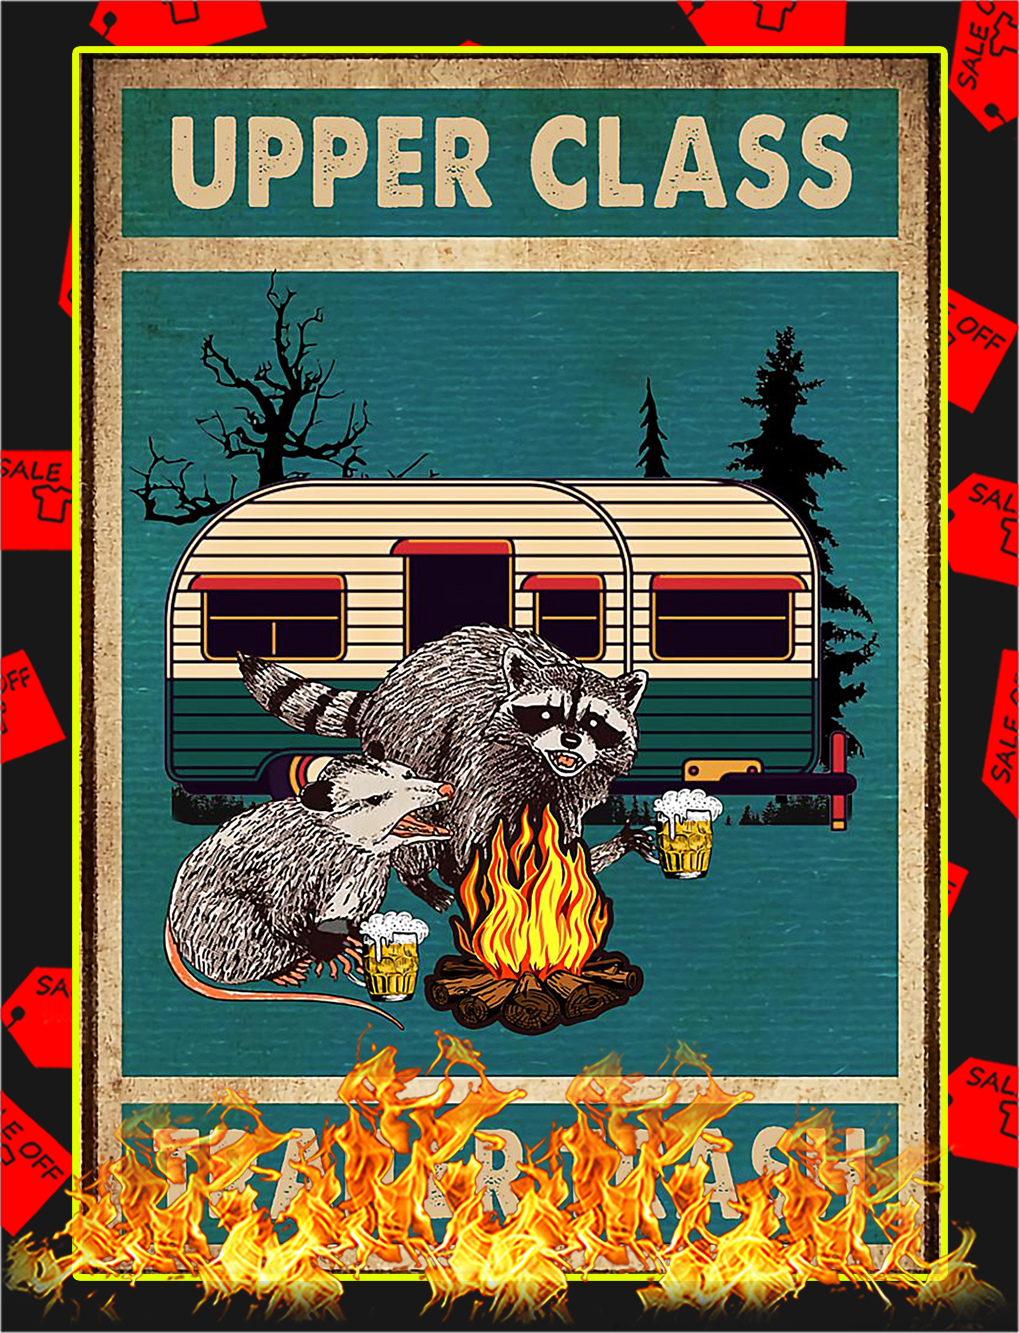 Raccoon and opossum upper class trailer trash poster -A4